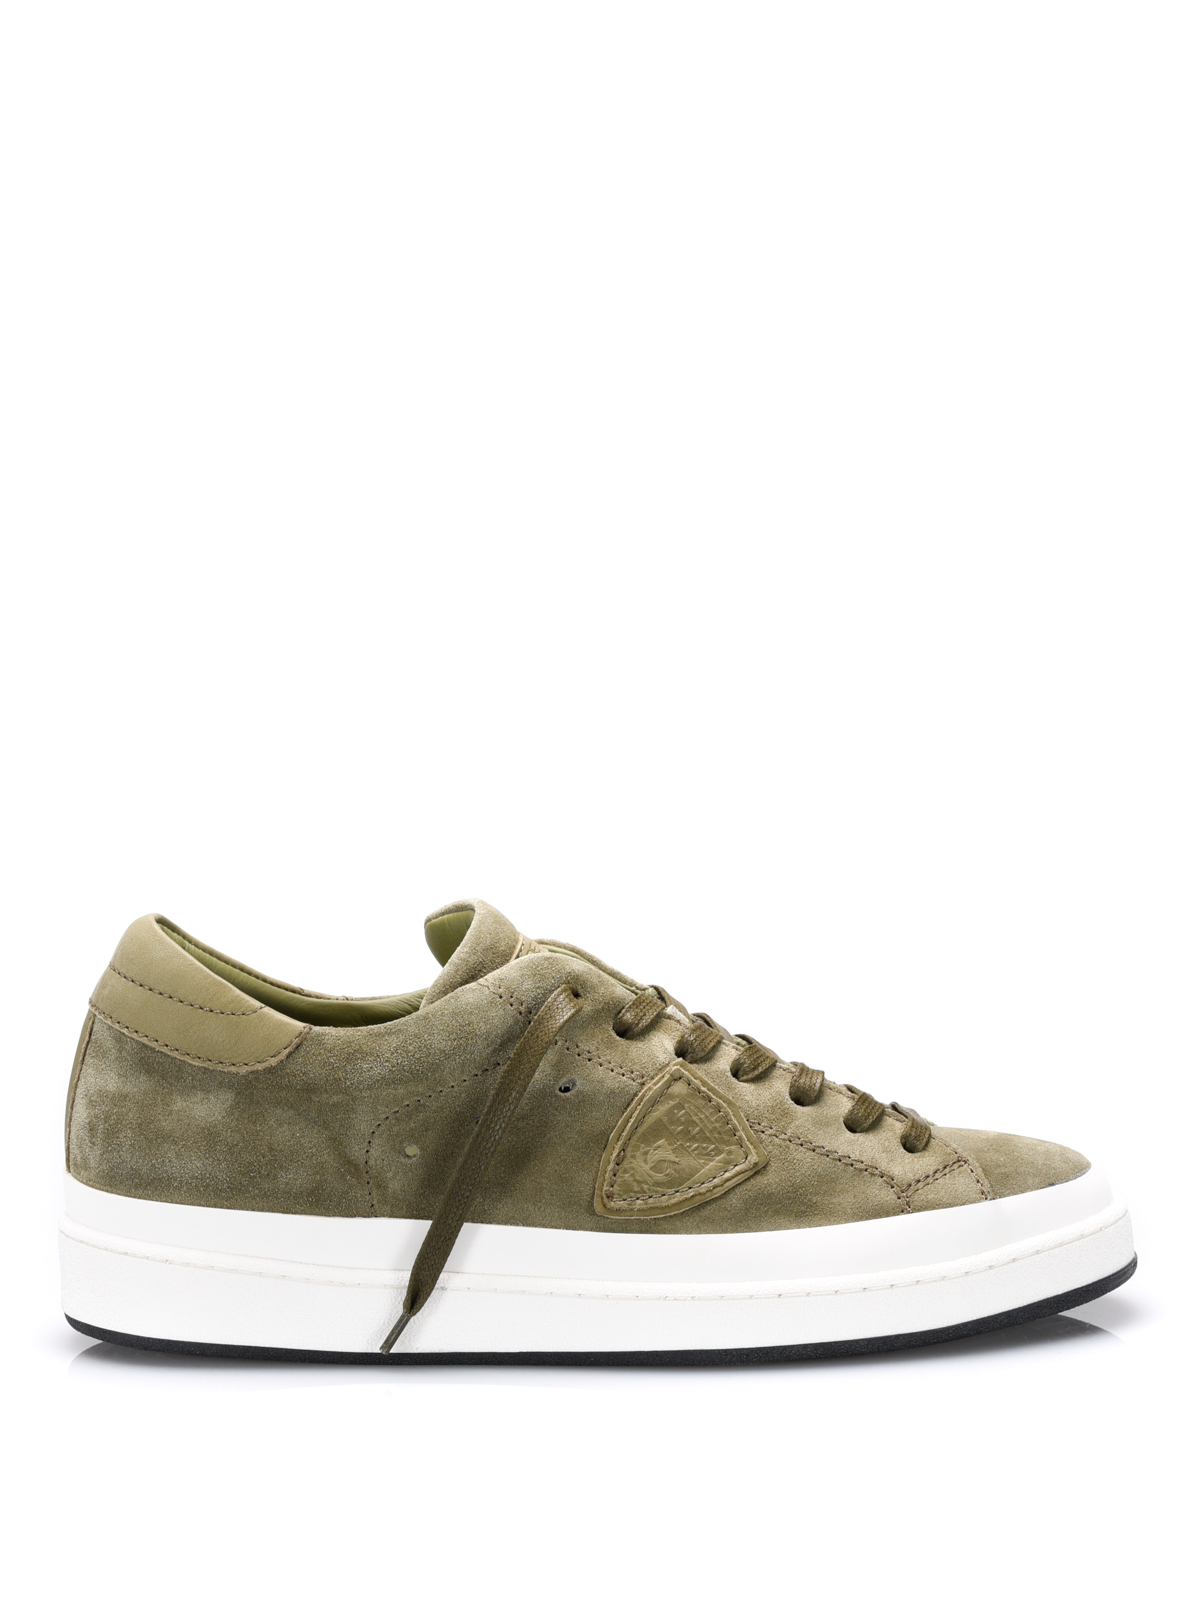 opera suede sneakers by philippe model trainers ikrix. Black Bedroom Furniture Sets. Home Design Ideas